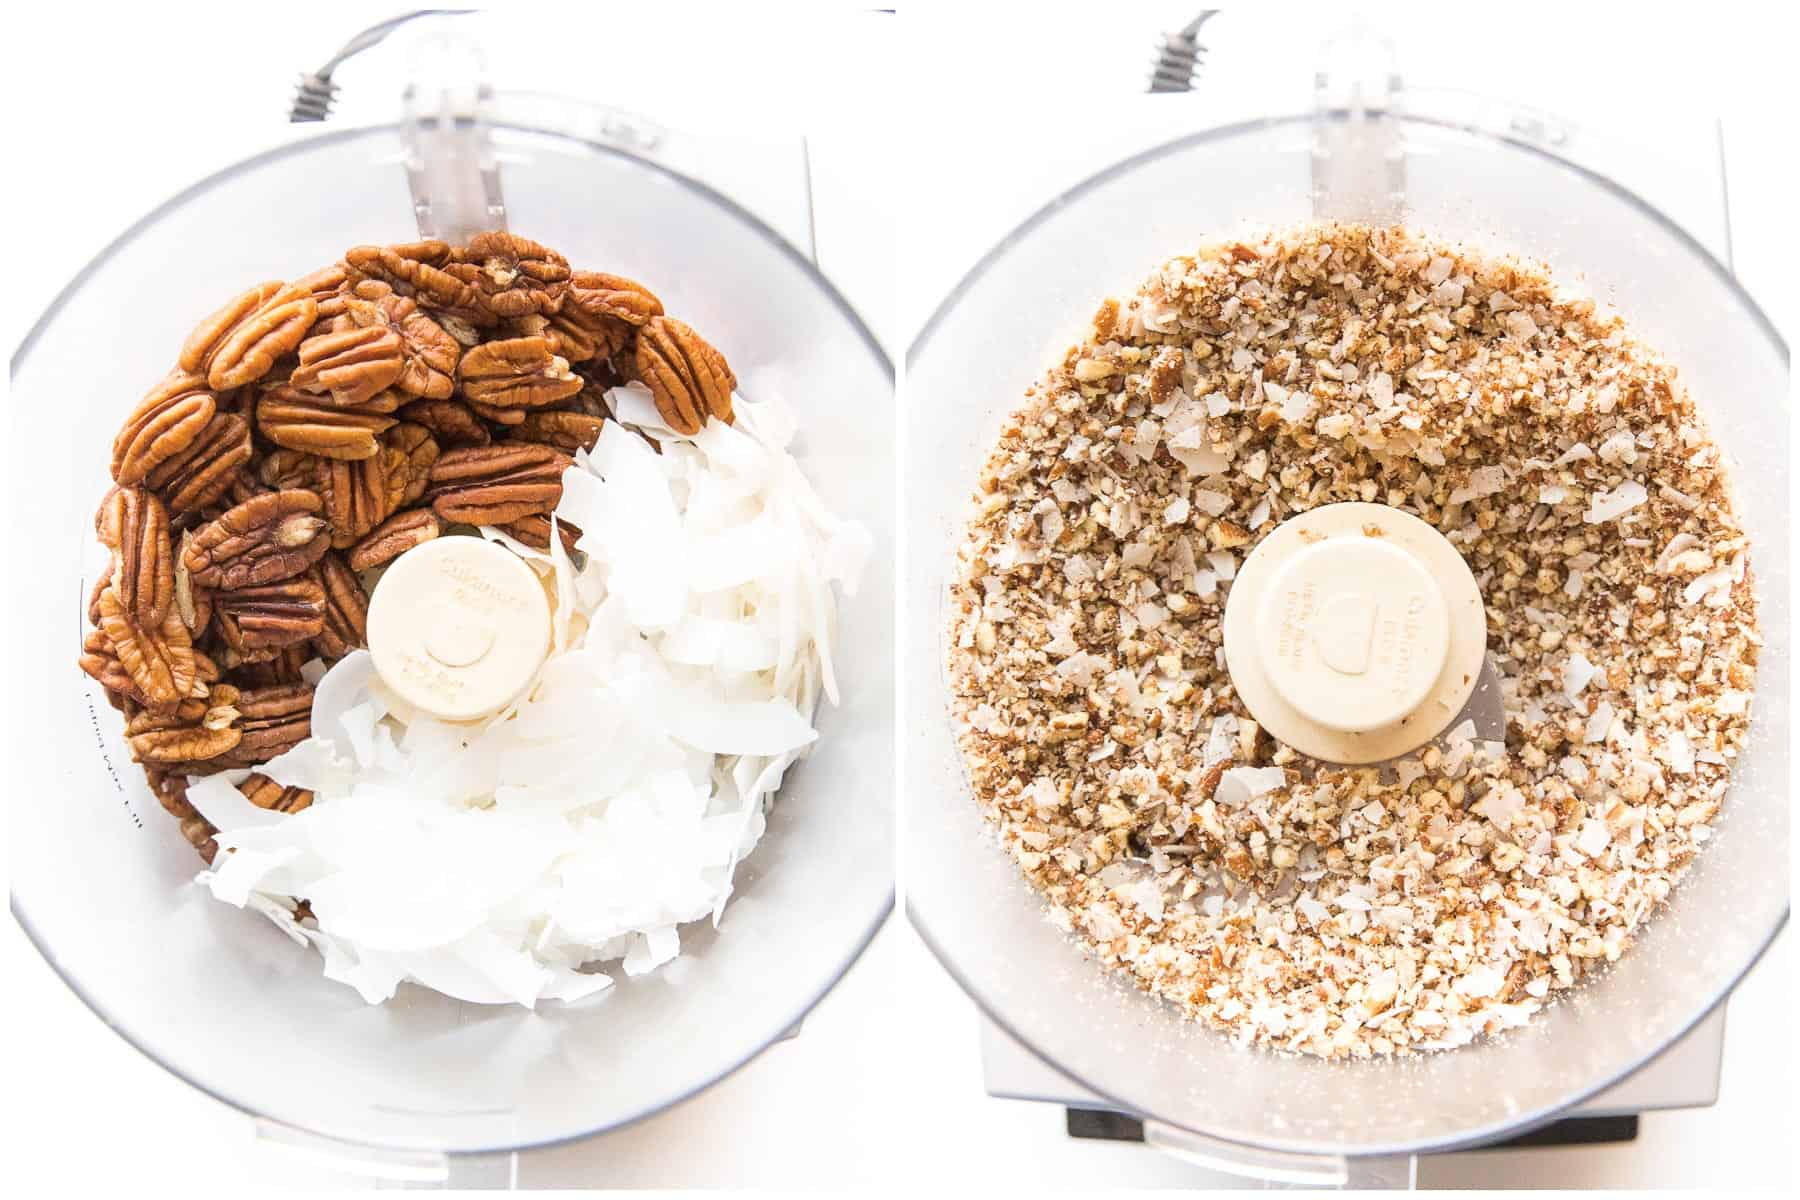 pecan + coconut chips in a food processor